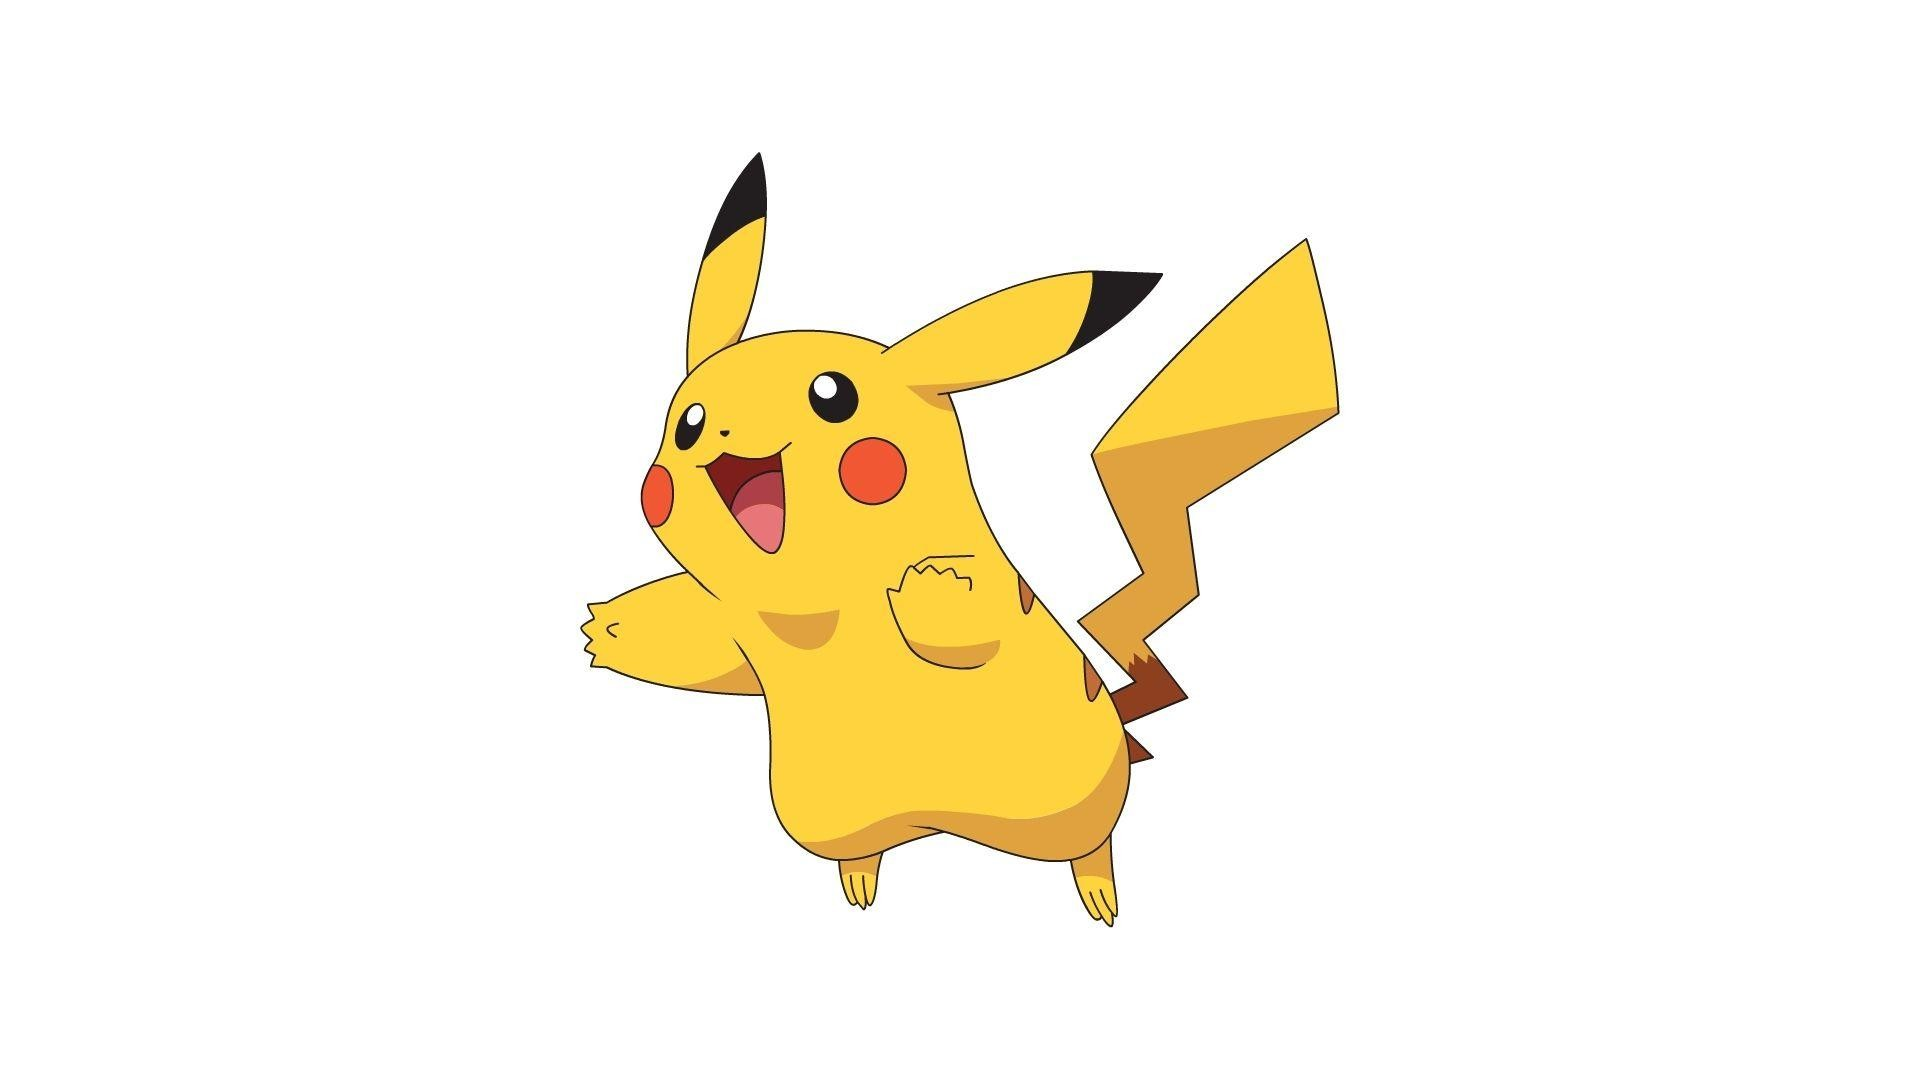 1920x1080 Cute Pokemon Wallpaper Pikachu Full Hd High Resolution For Desktop